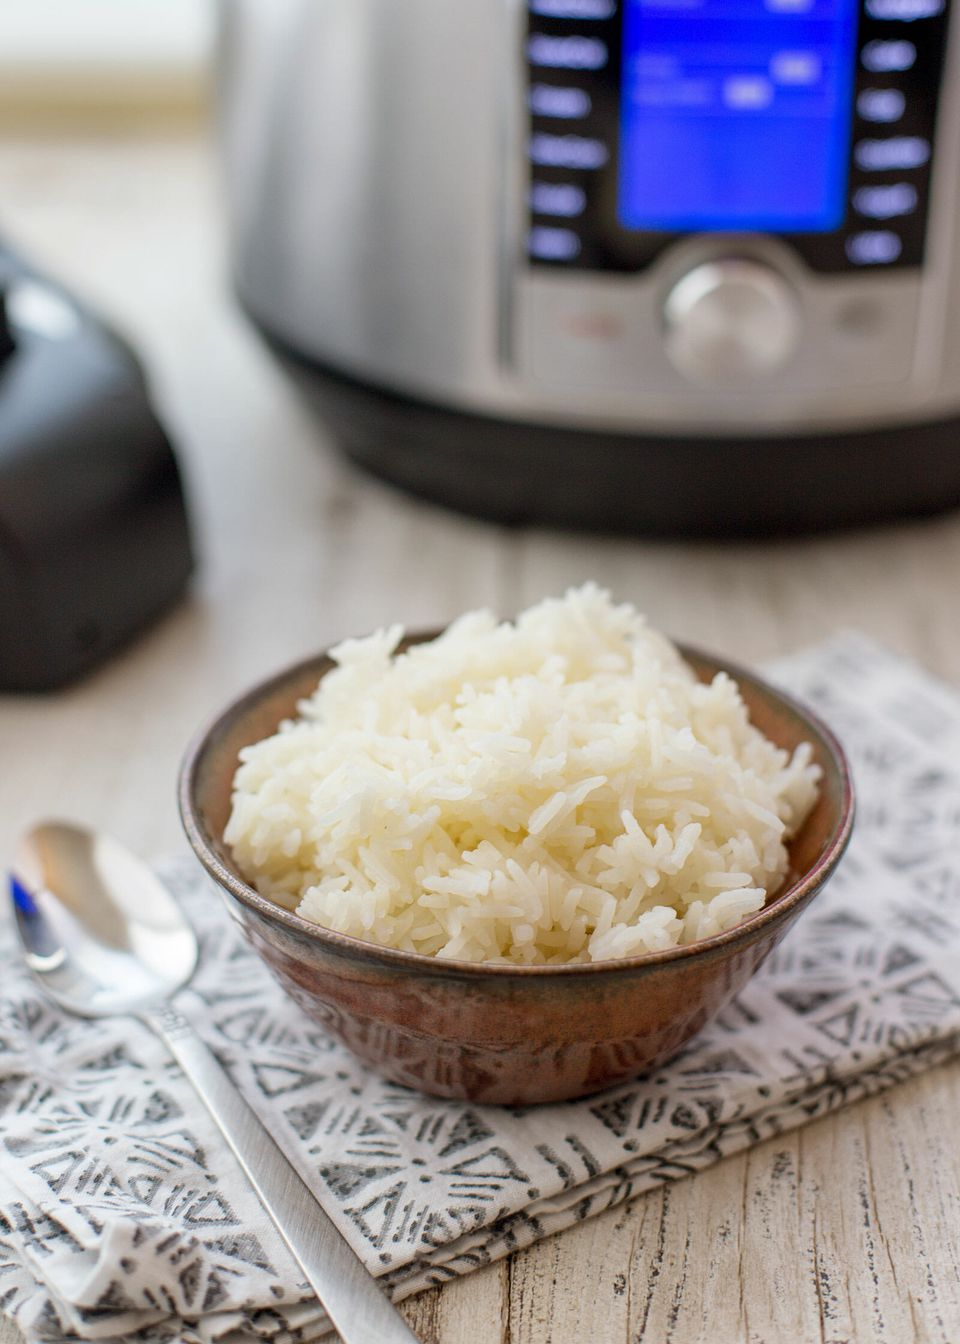 A bowl of instant pot rice with the instant pot in the background